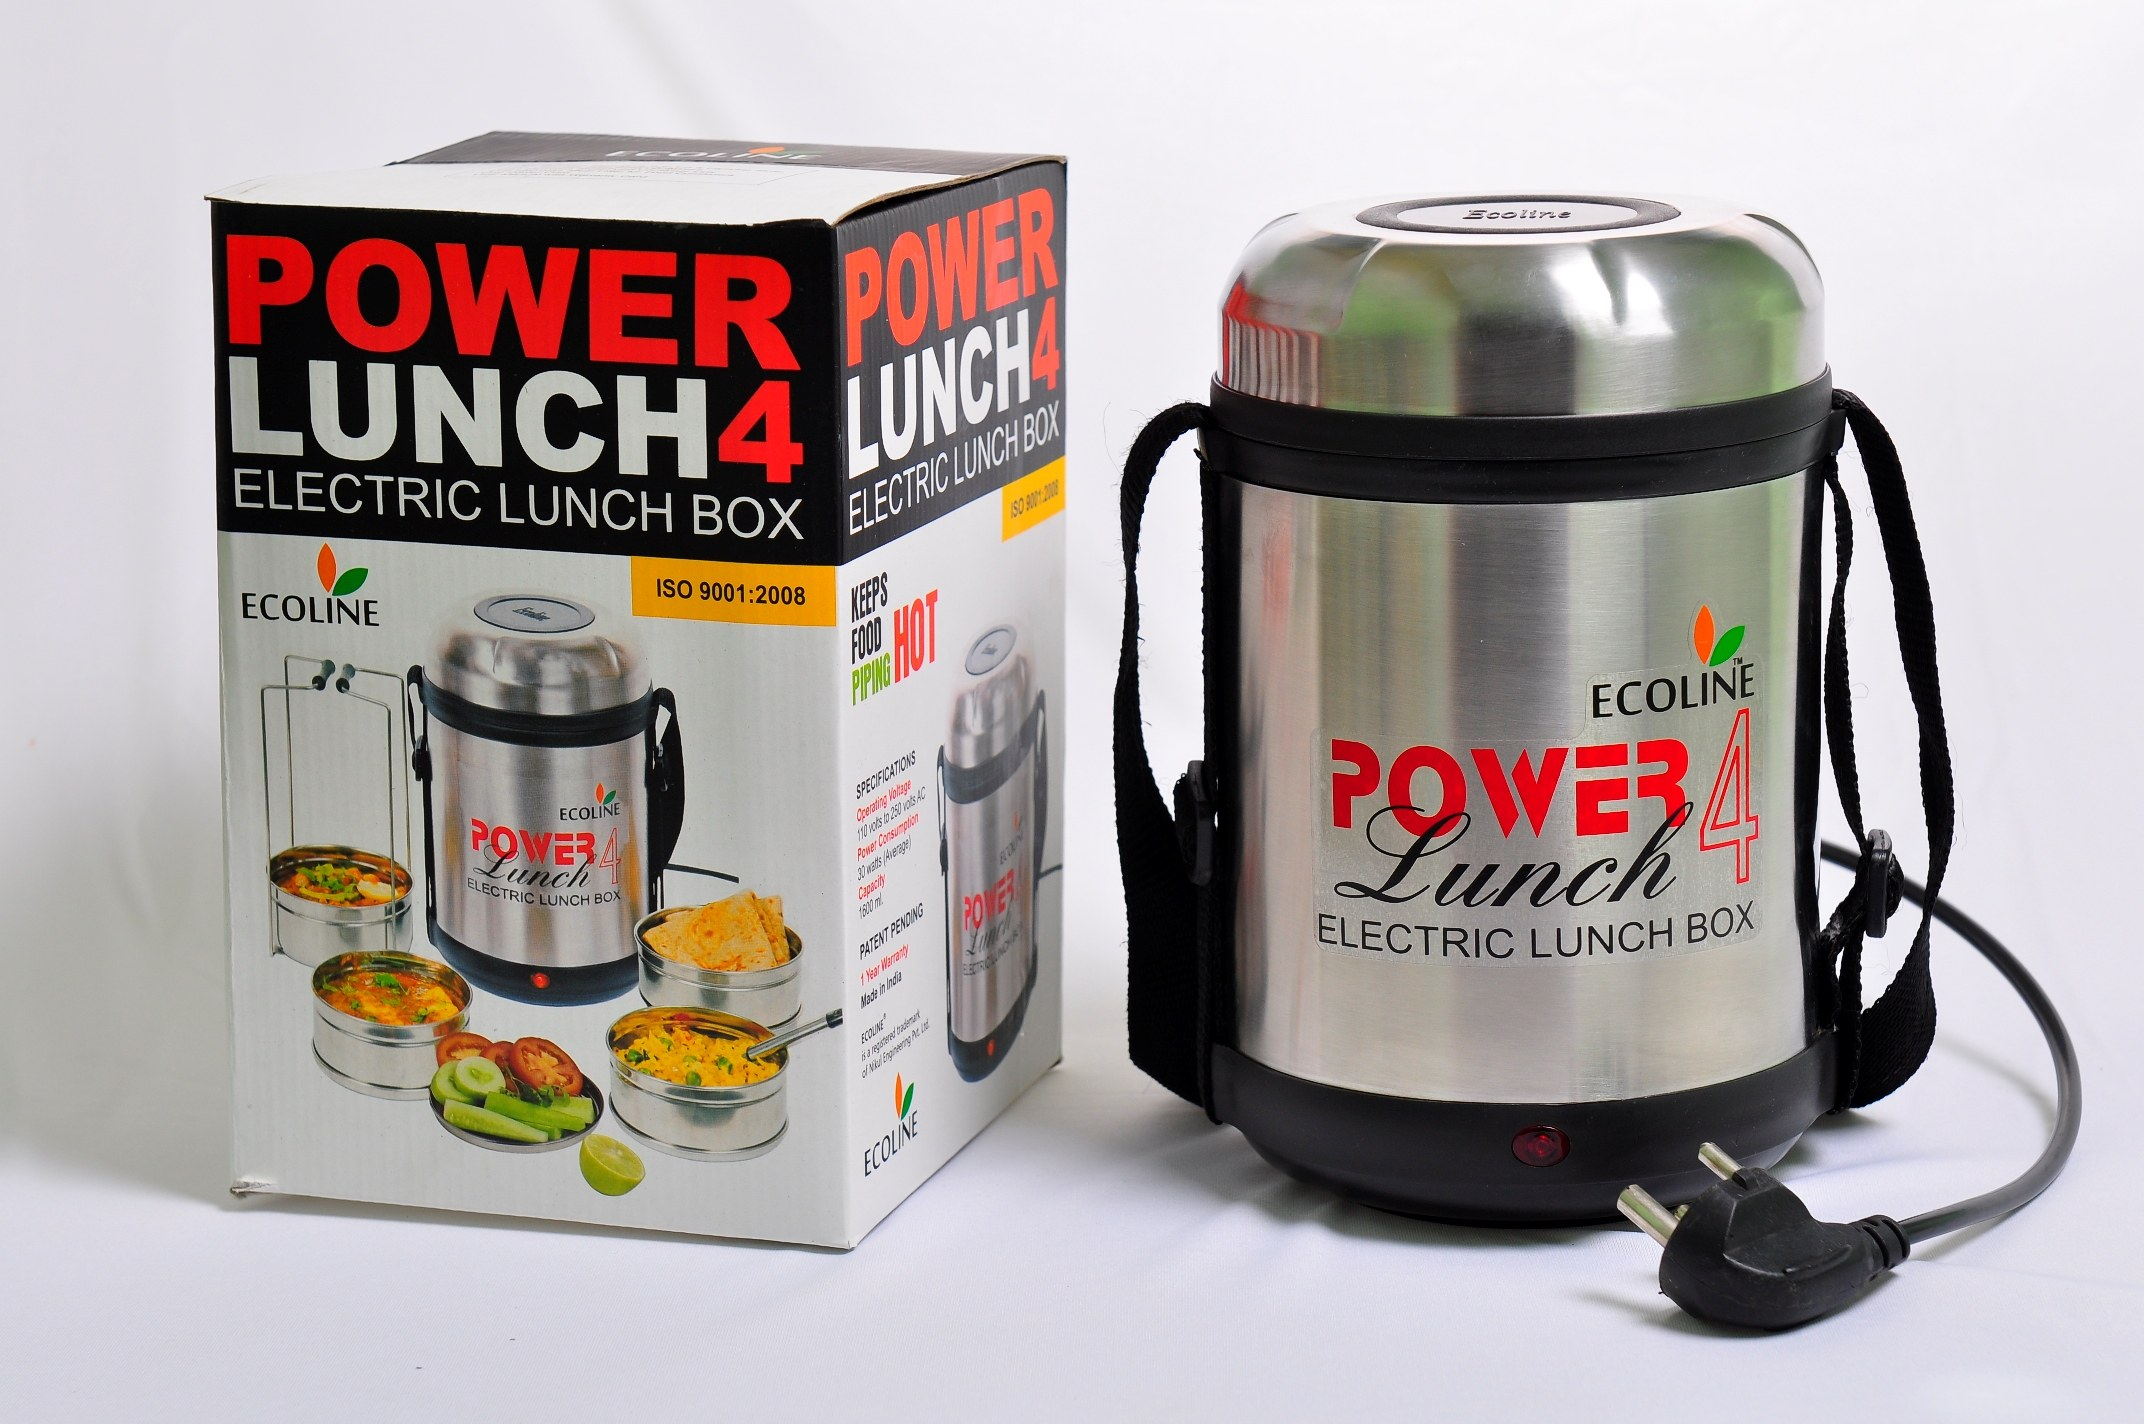 Lunch box electric ecoline power lunch 4 online shopping for Decor 6 piece lunchbox